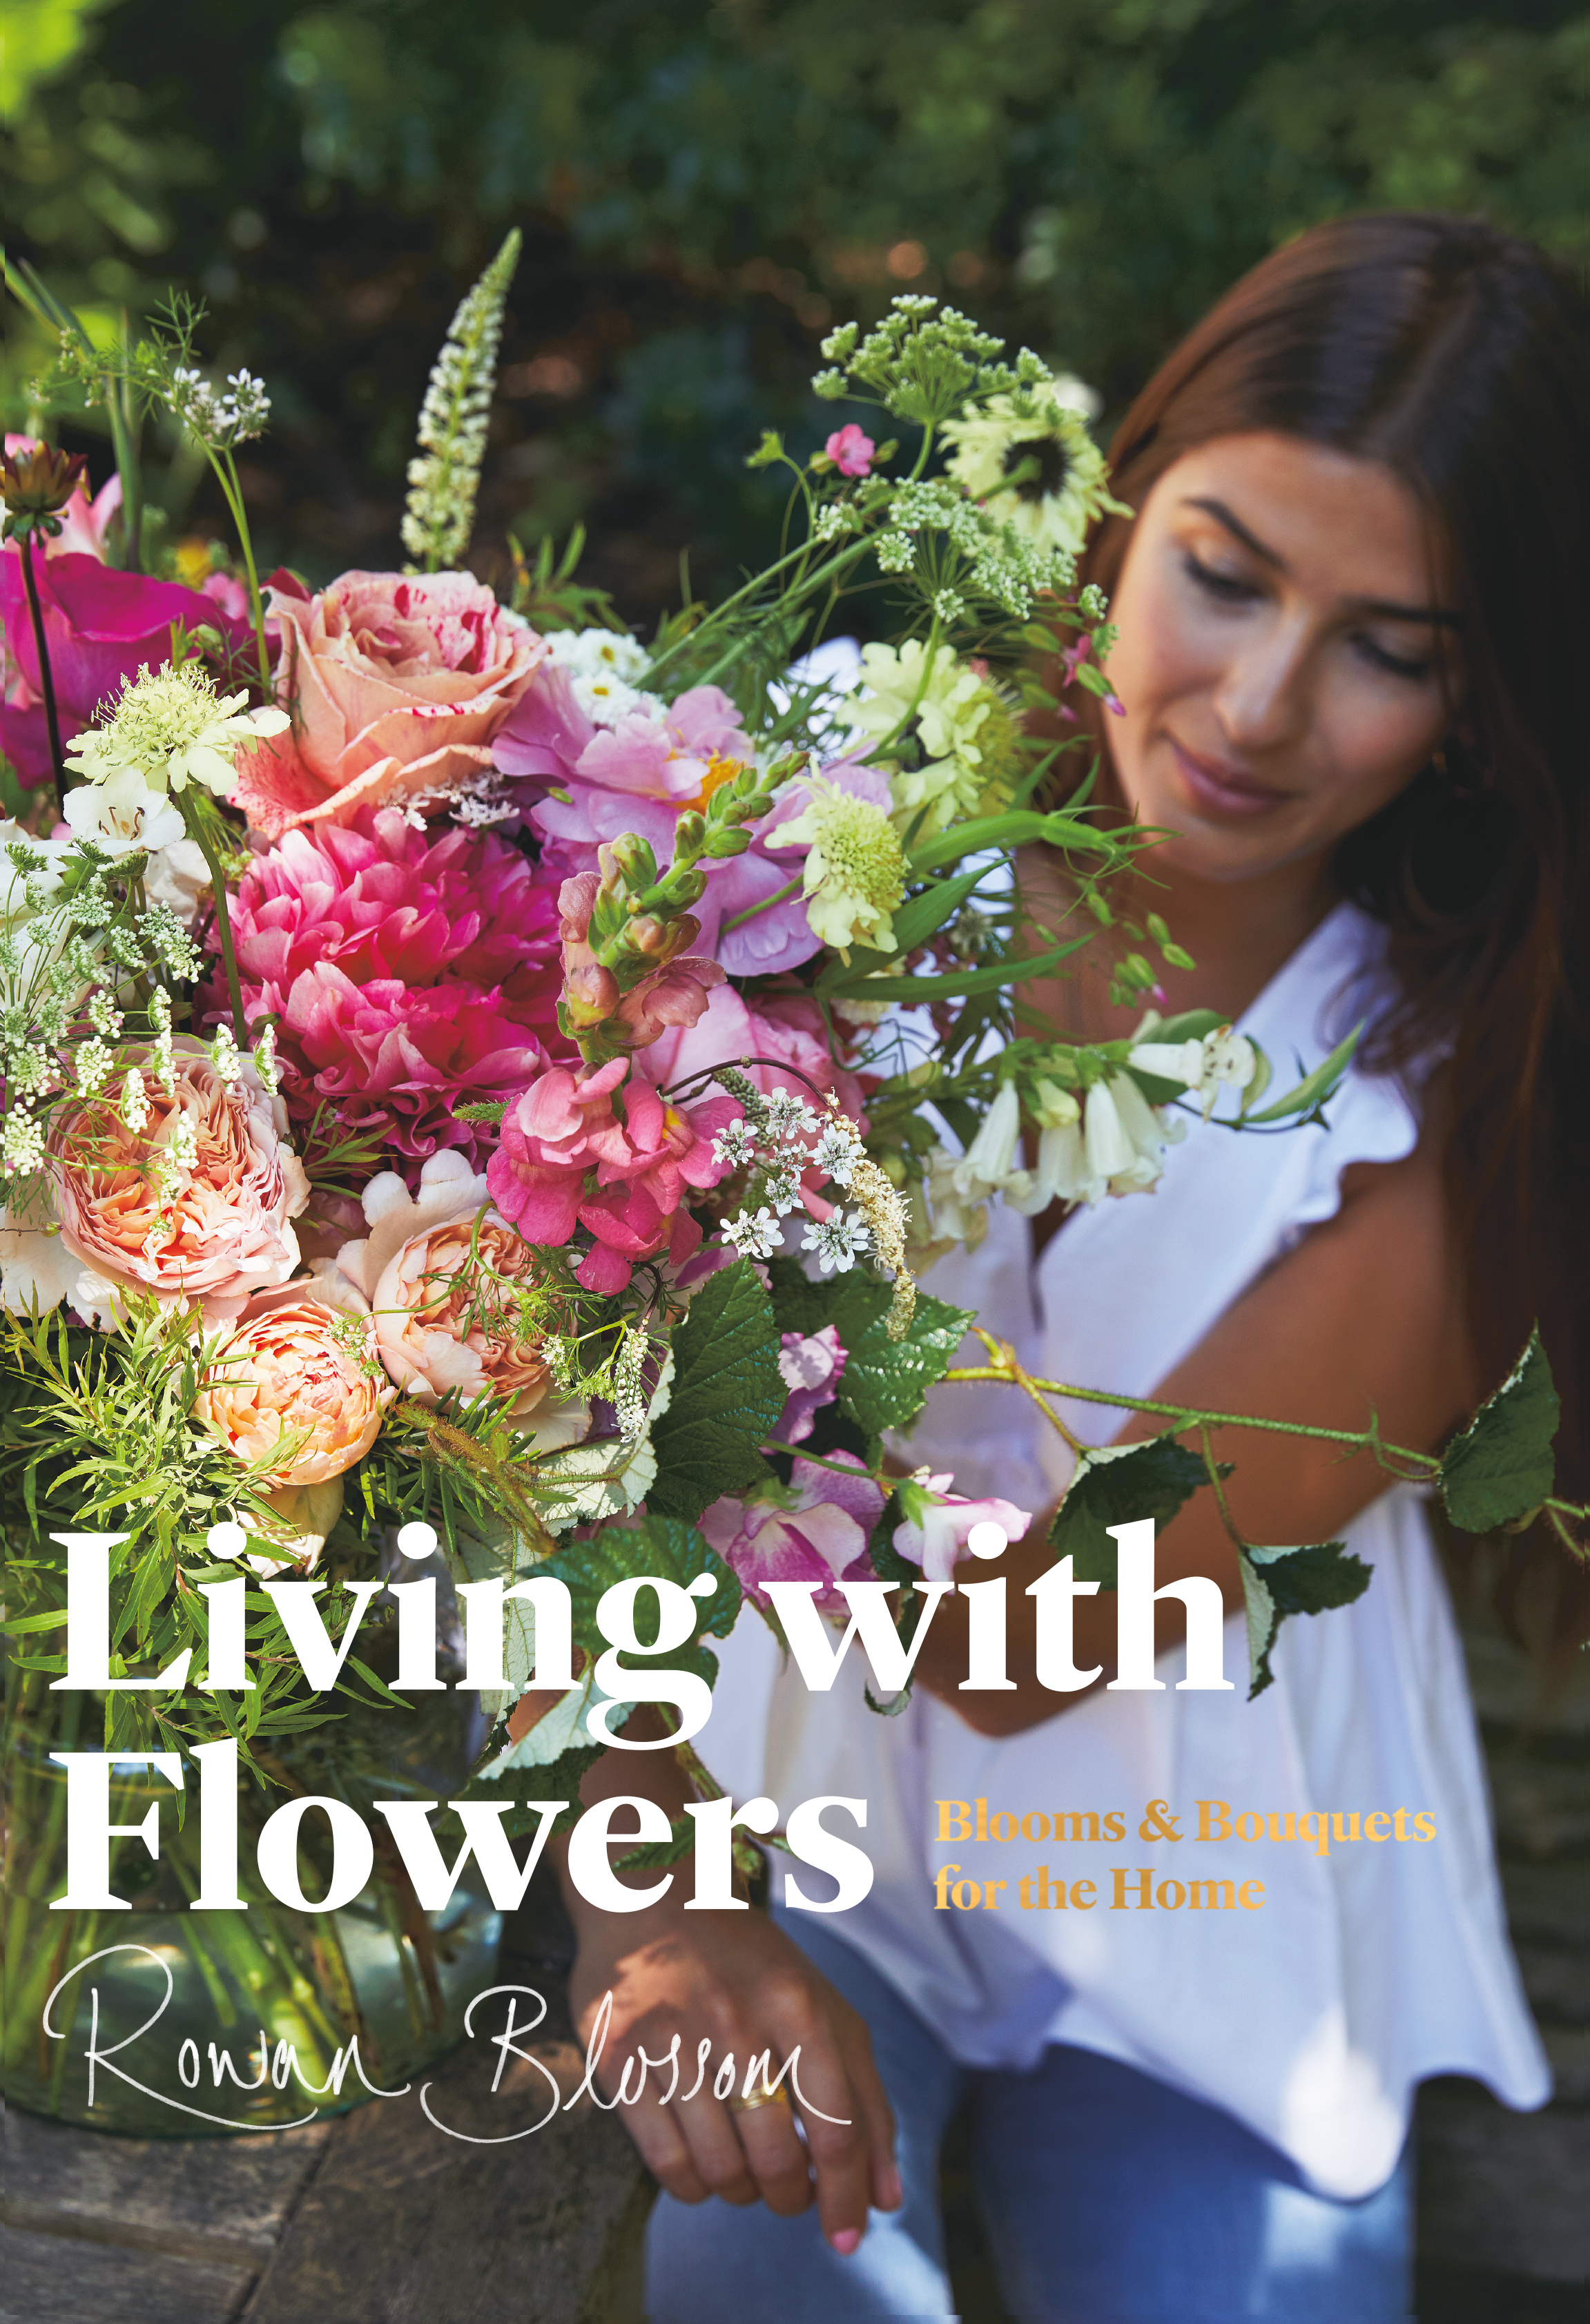 living_with_flowers_cover_mock_up_2.jpg